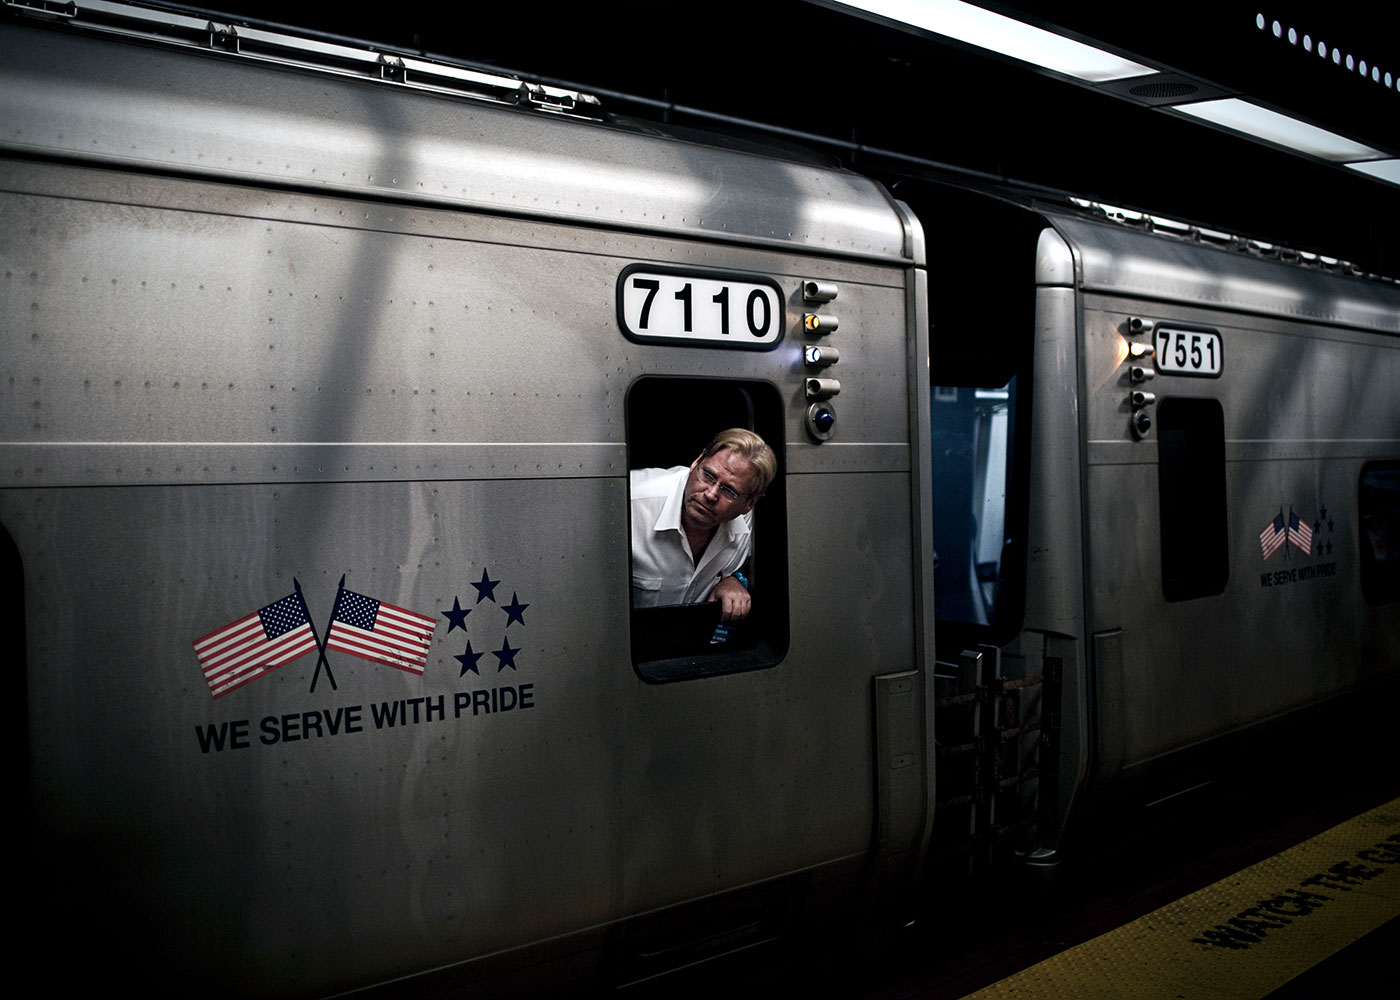 NYC_Subway7_01